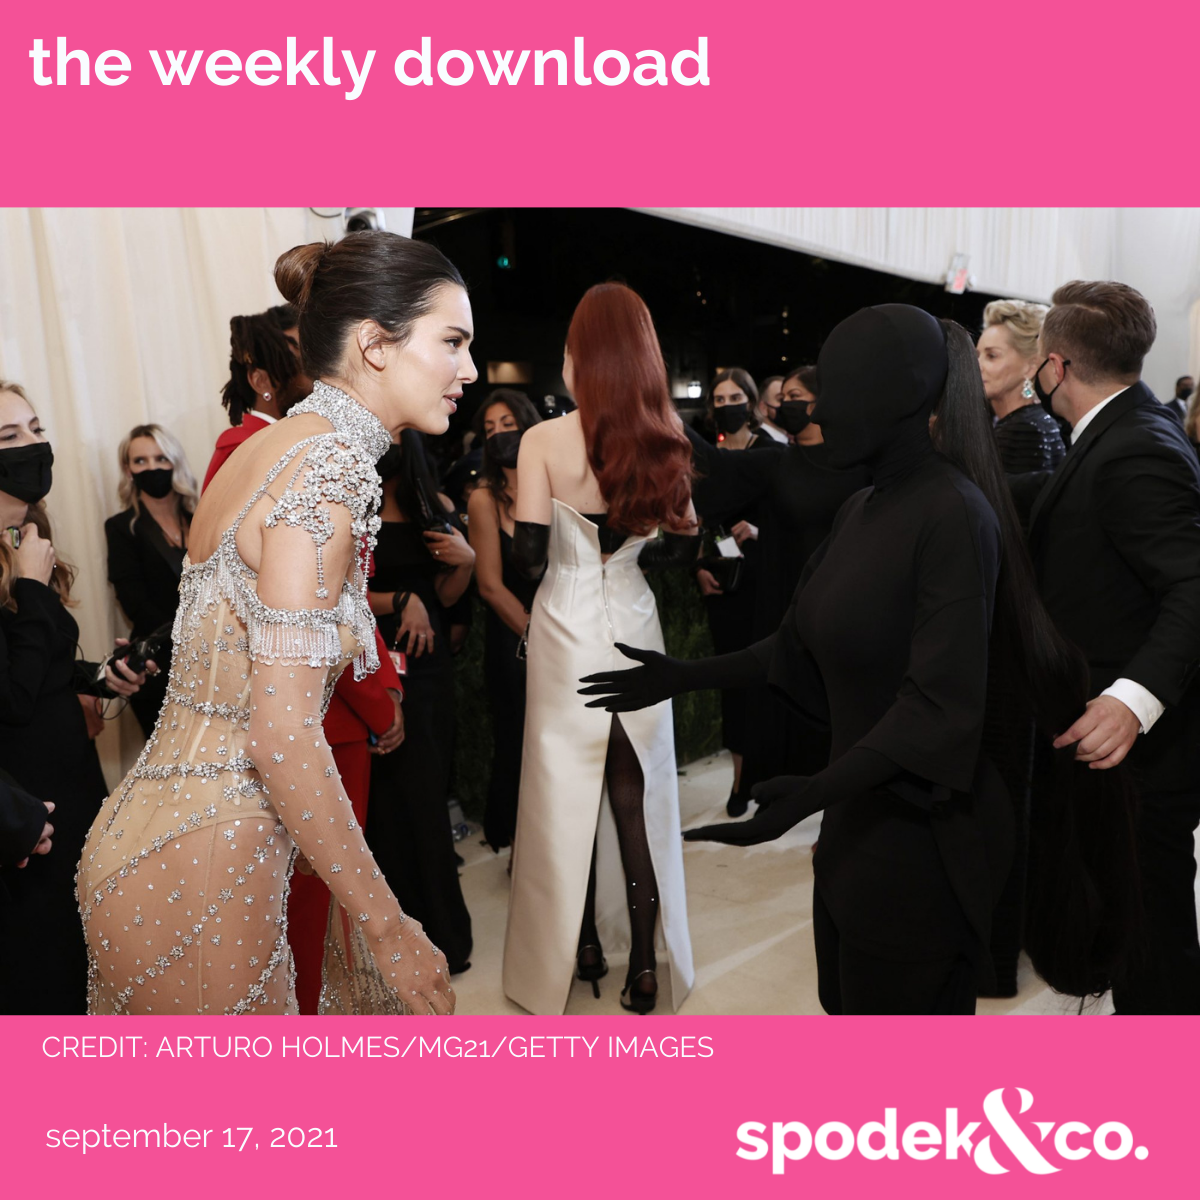 The Weekly Download – September 17, 2021